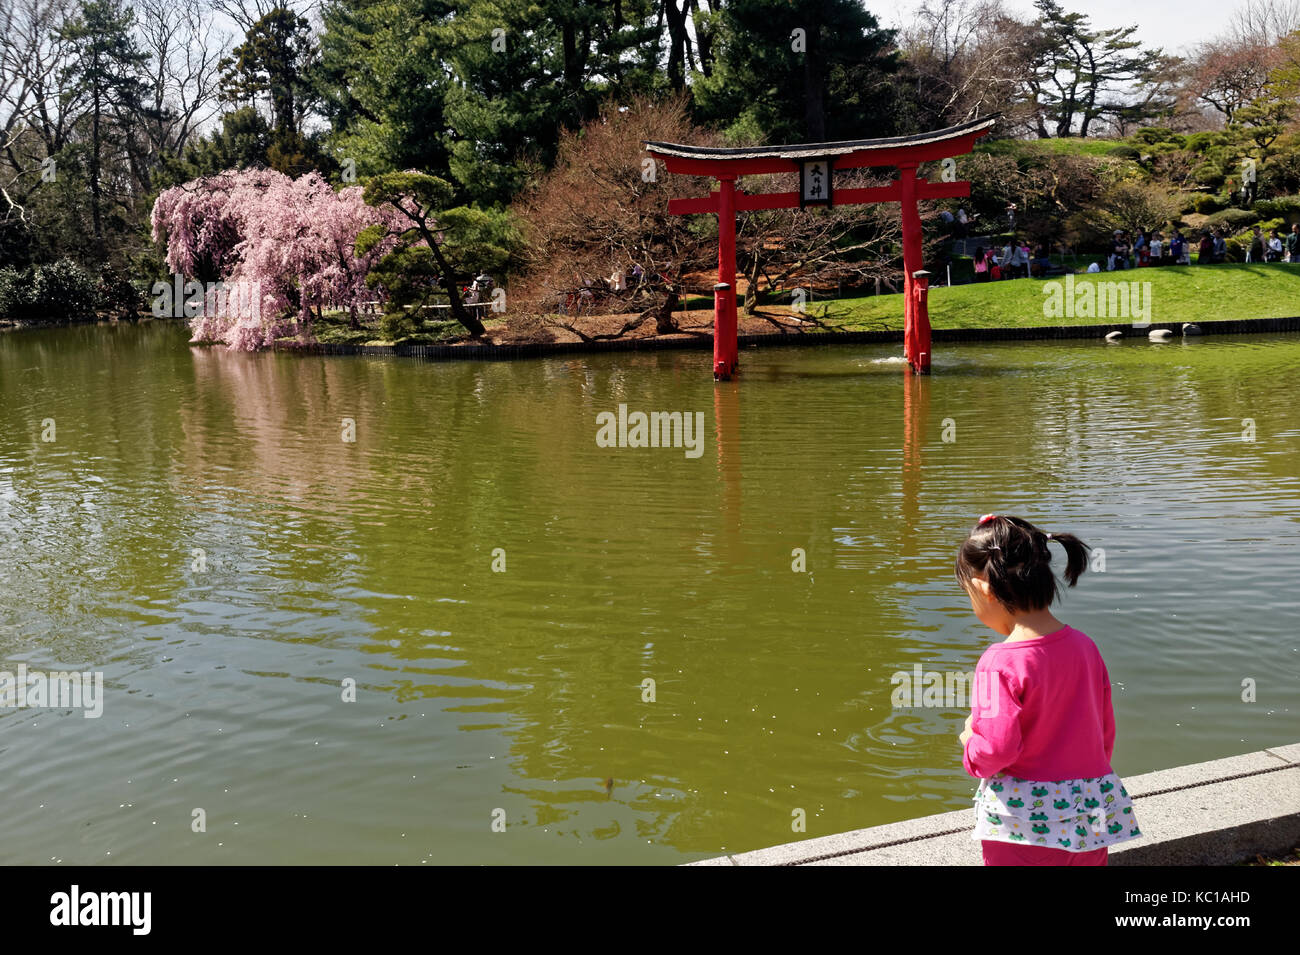 Little girl gazing at a pond at the Japanese Garden, Brooklyn Botanic Gardens. - Stock Image